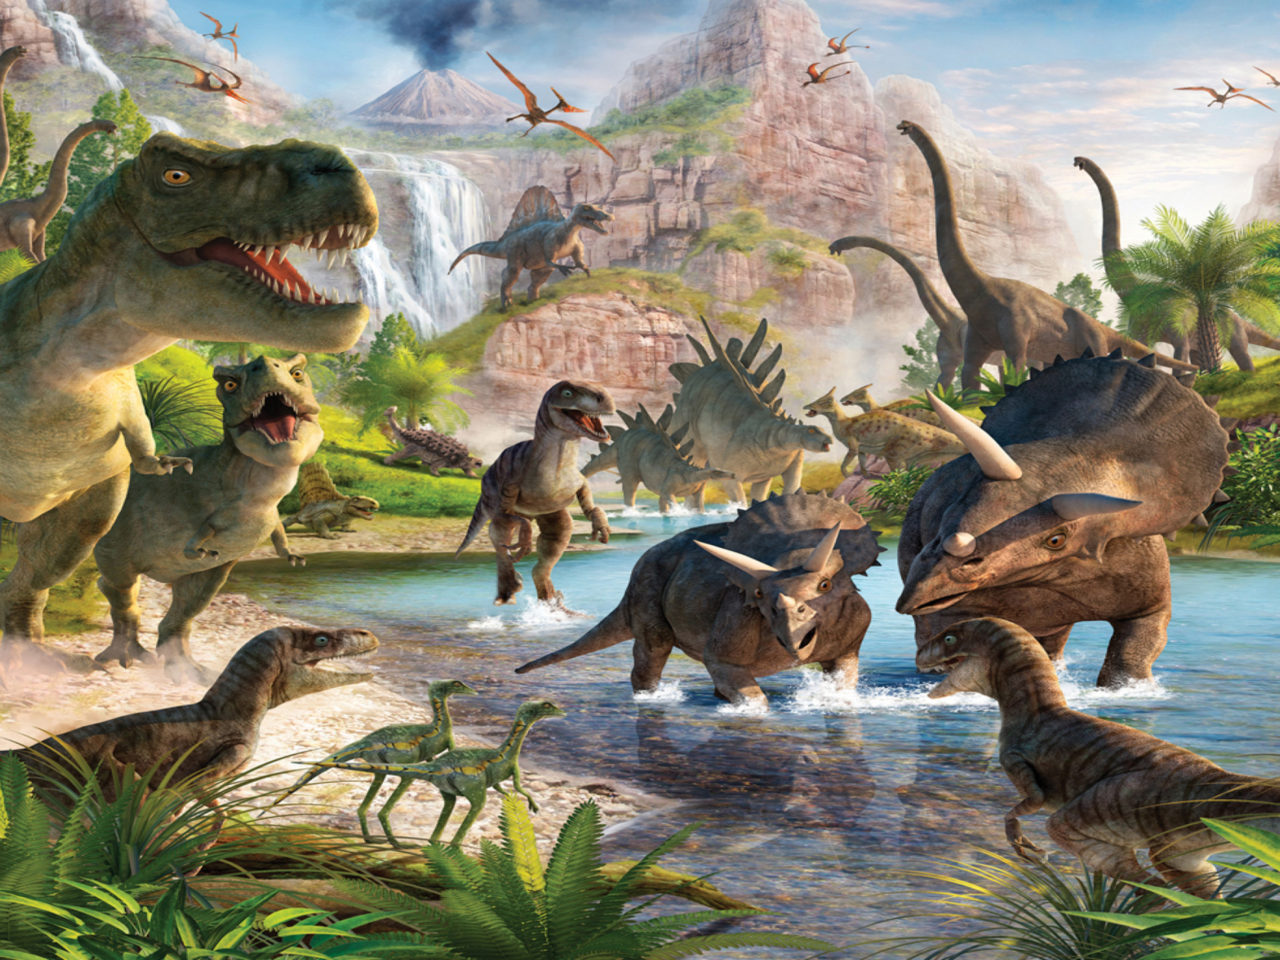 How To Get A Live Wallpaper On Iphone X Dinosaurs Wallpapers For Desktop 11686 Full Hd Wallpaper